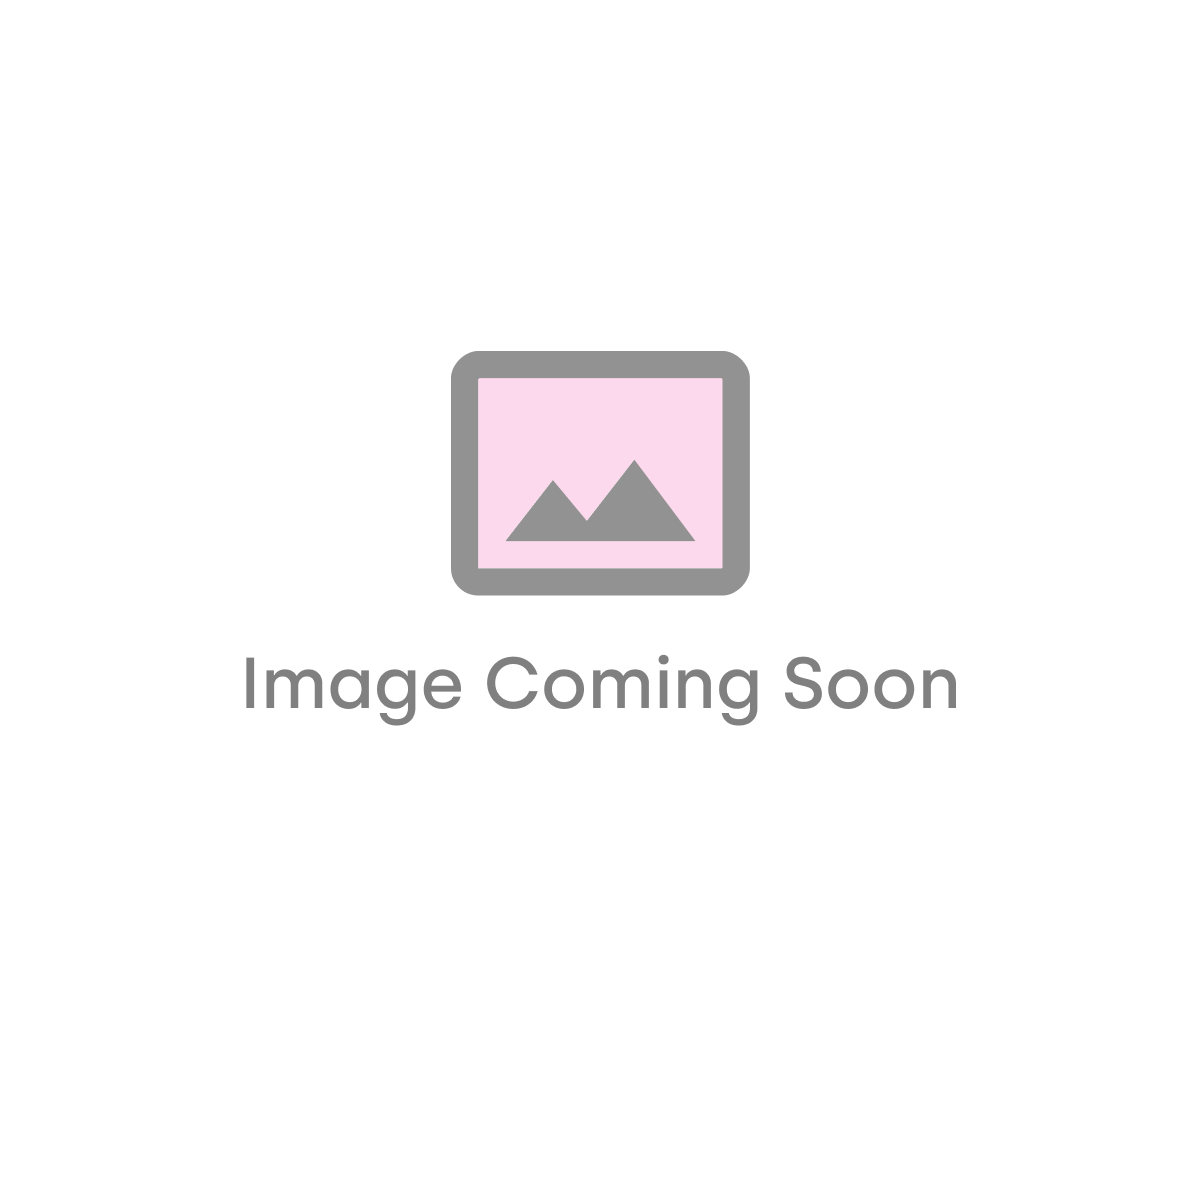 Heritage Gracechurch Exposed Shower with Deluxe Flexible Riser Kit (12668)